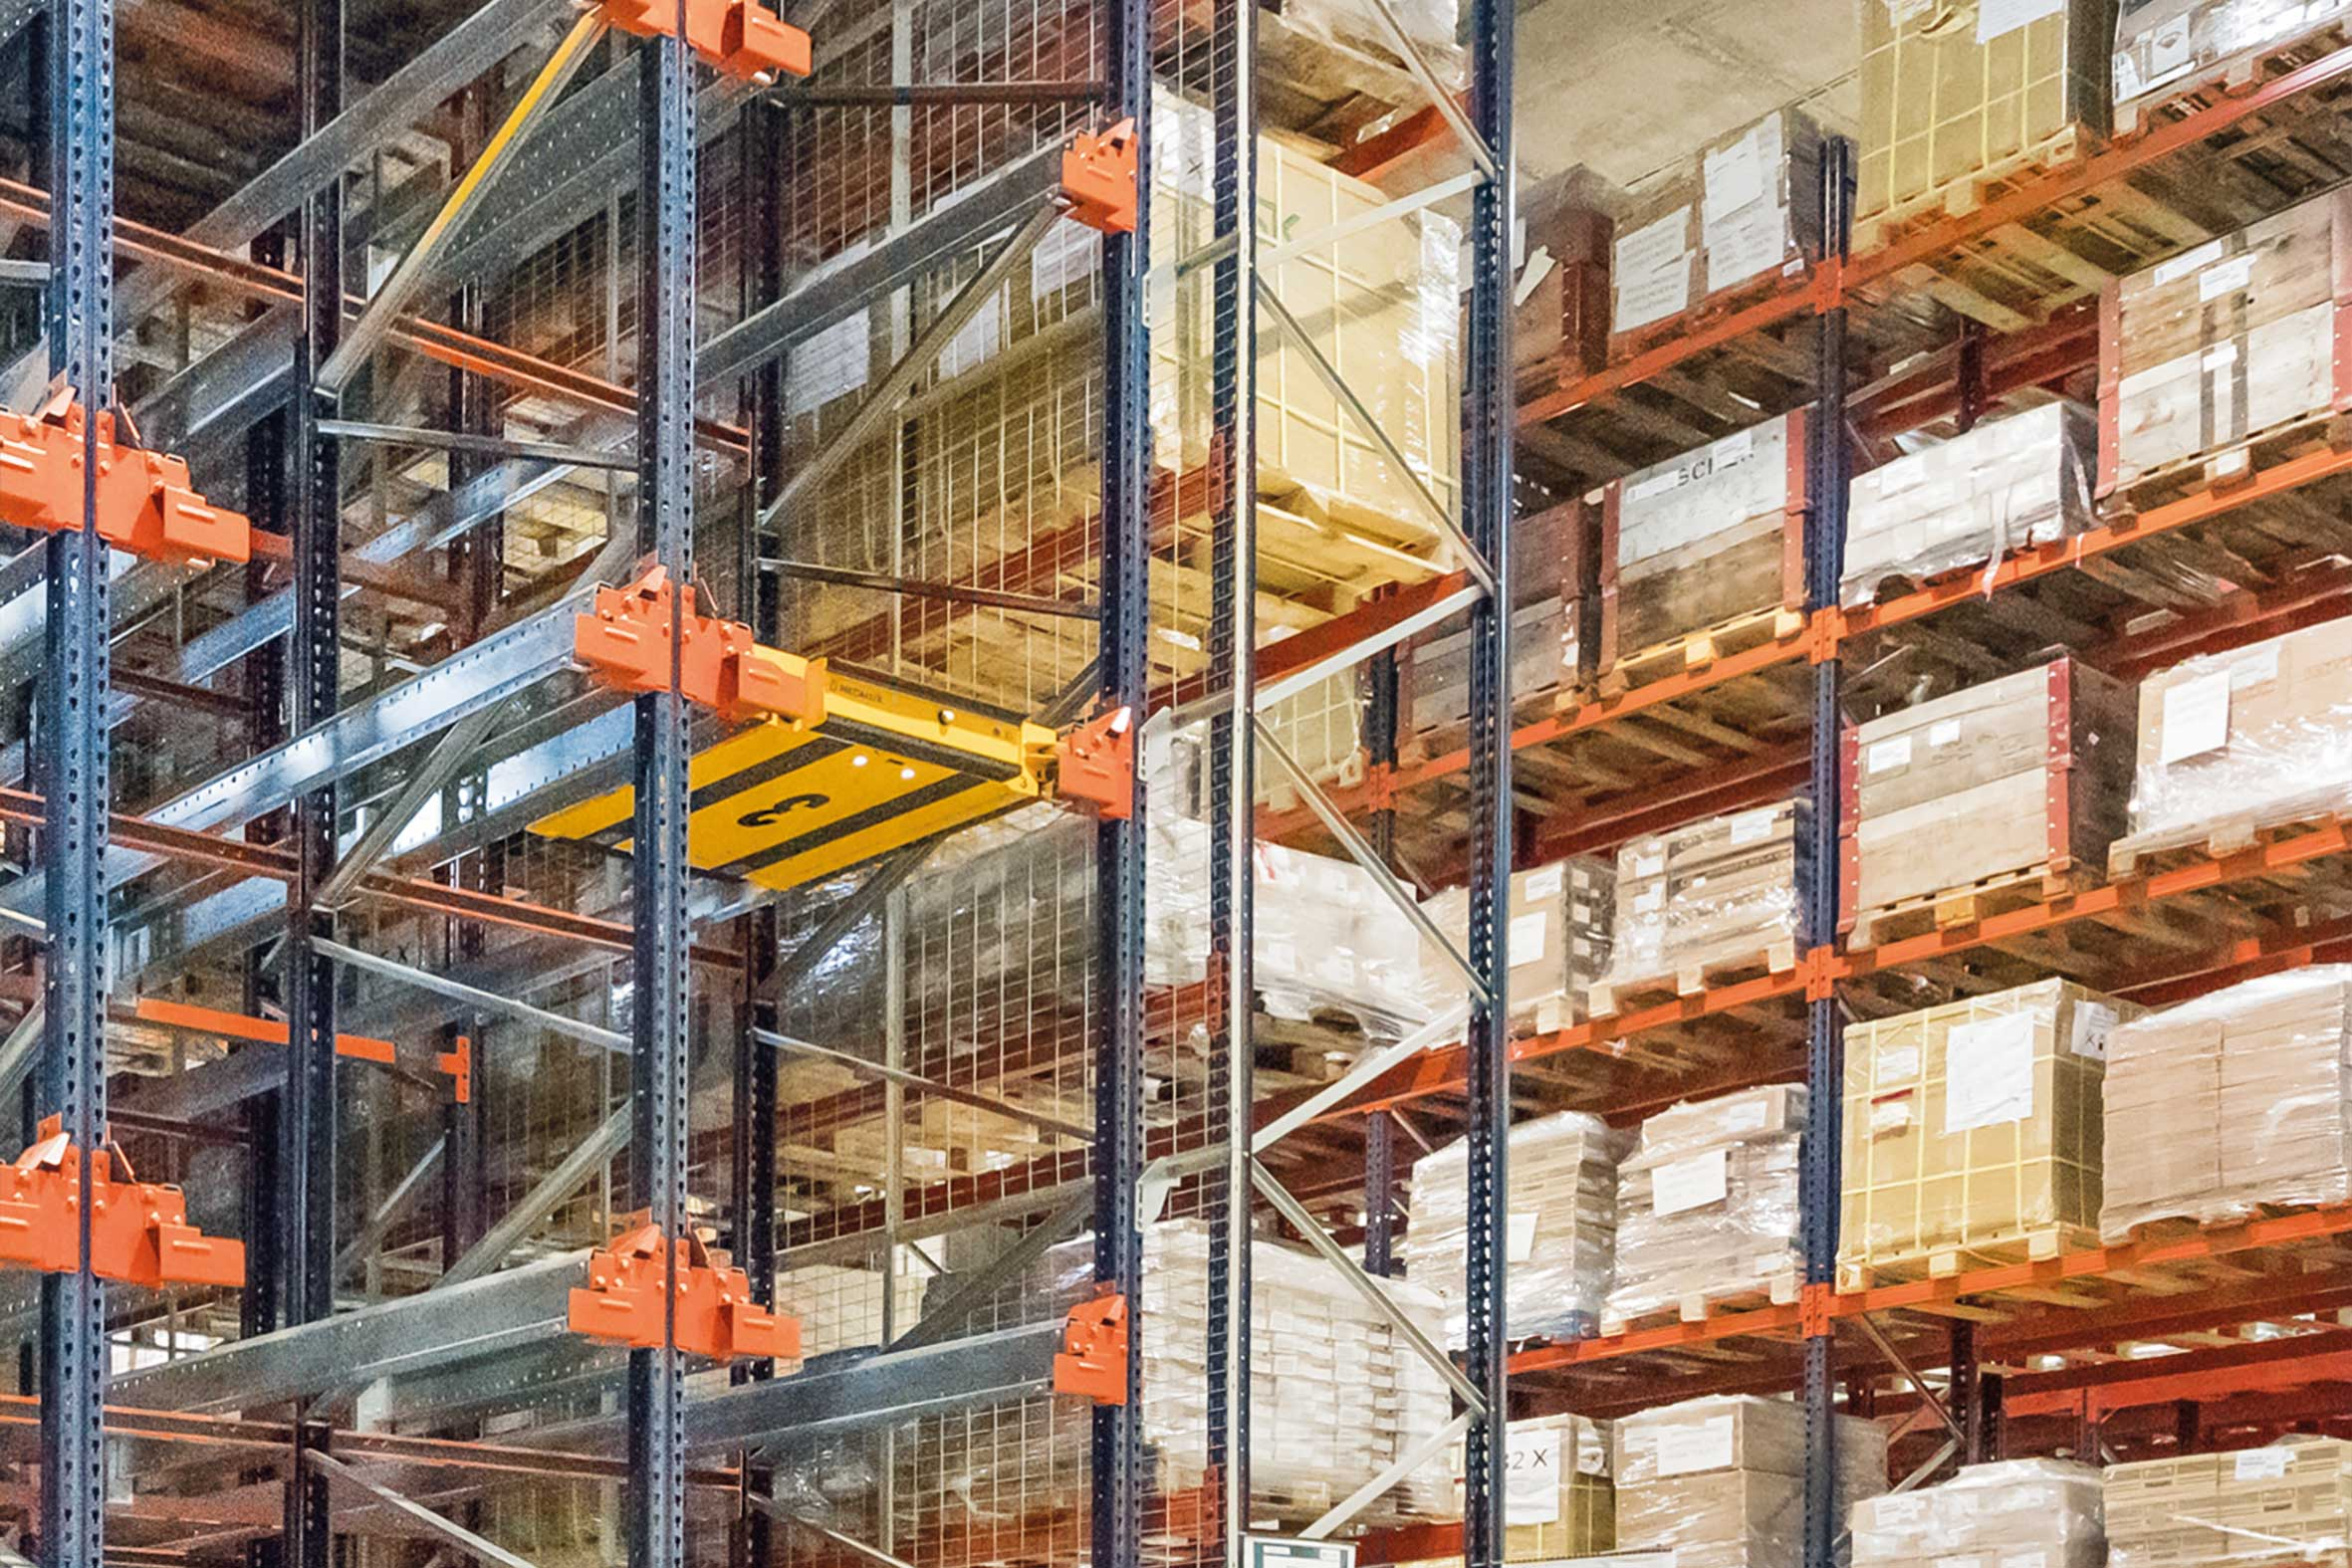 Pallet racks and Pallet Shuttle in the new MGI warehouse